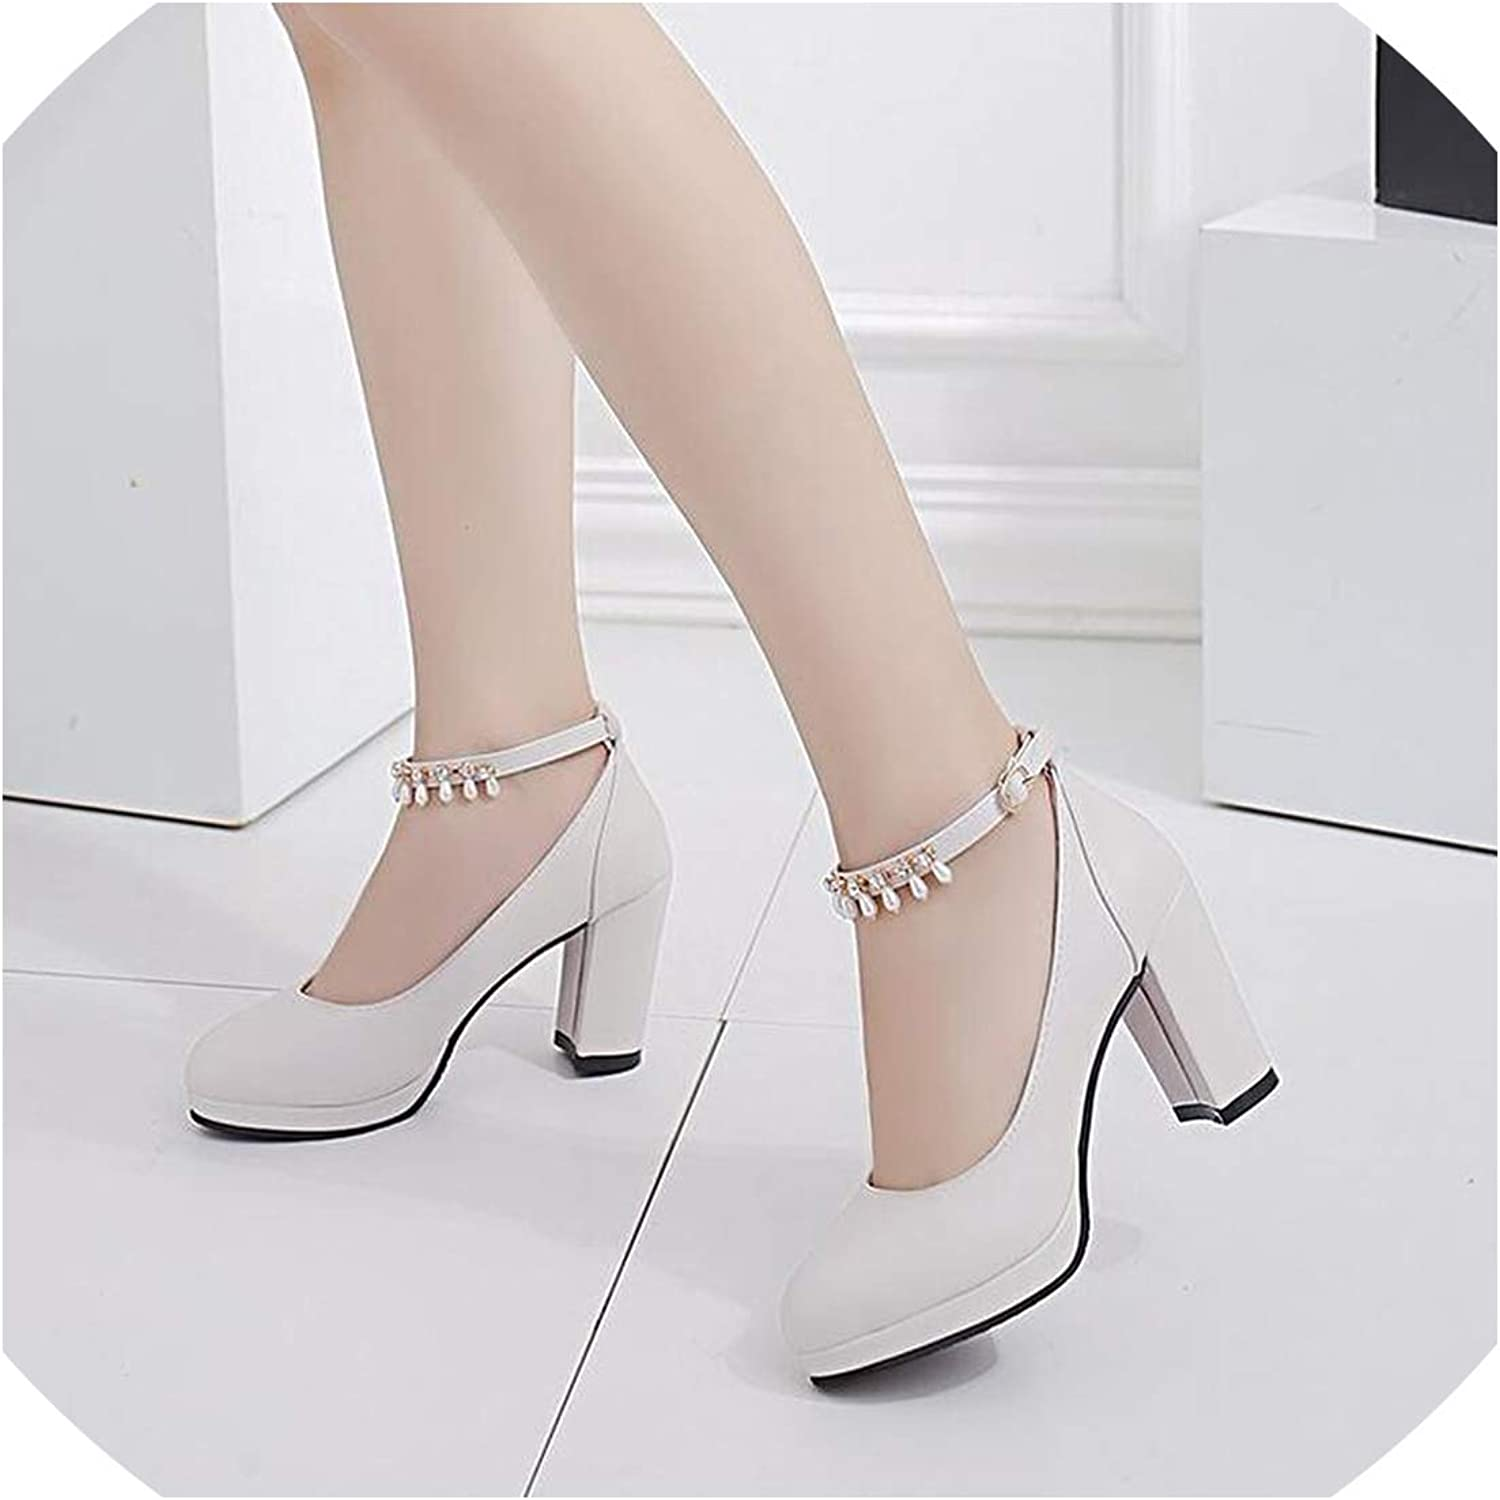 Women shoes Round Toe Pumps Pu Leather Leisure Dress Party shoes High Heels Boat Wedding shoes